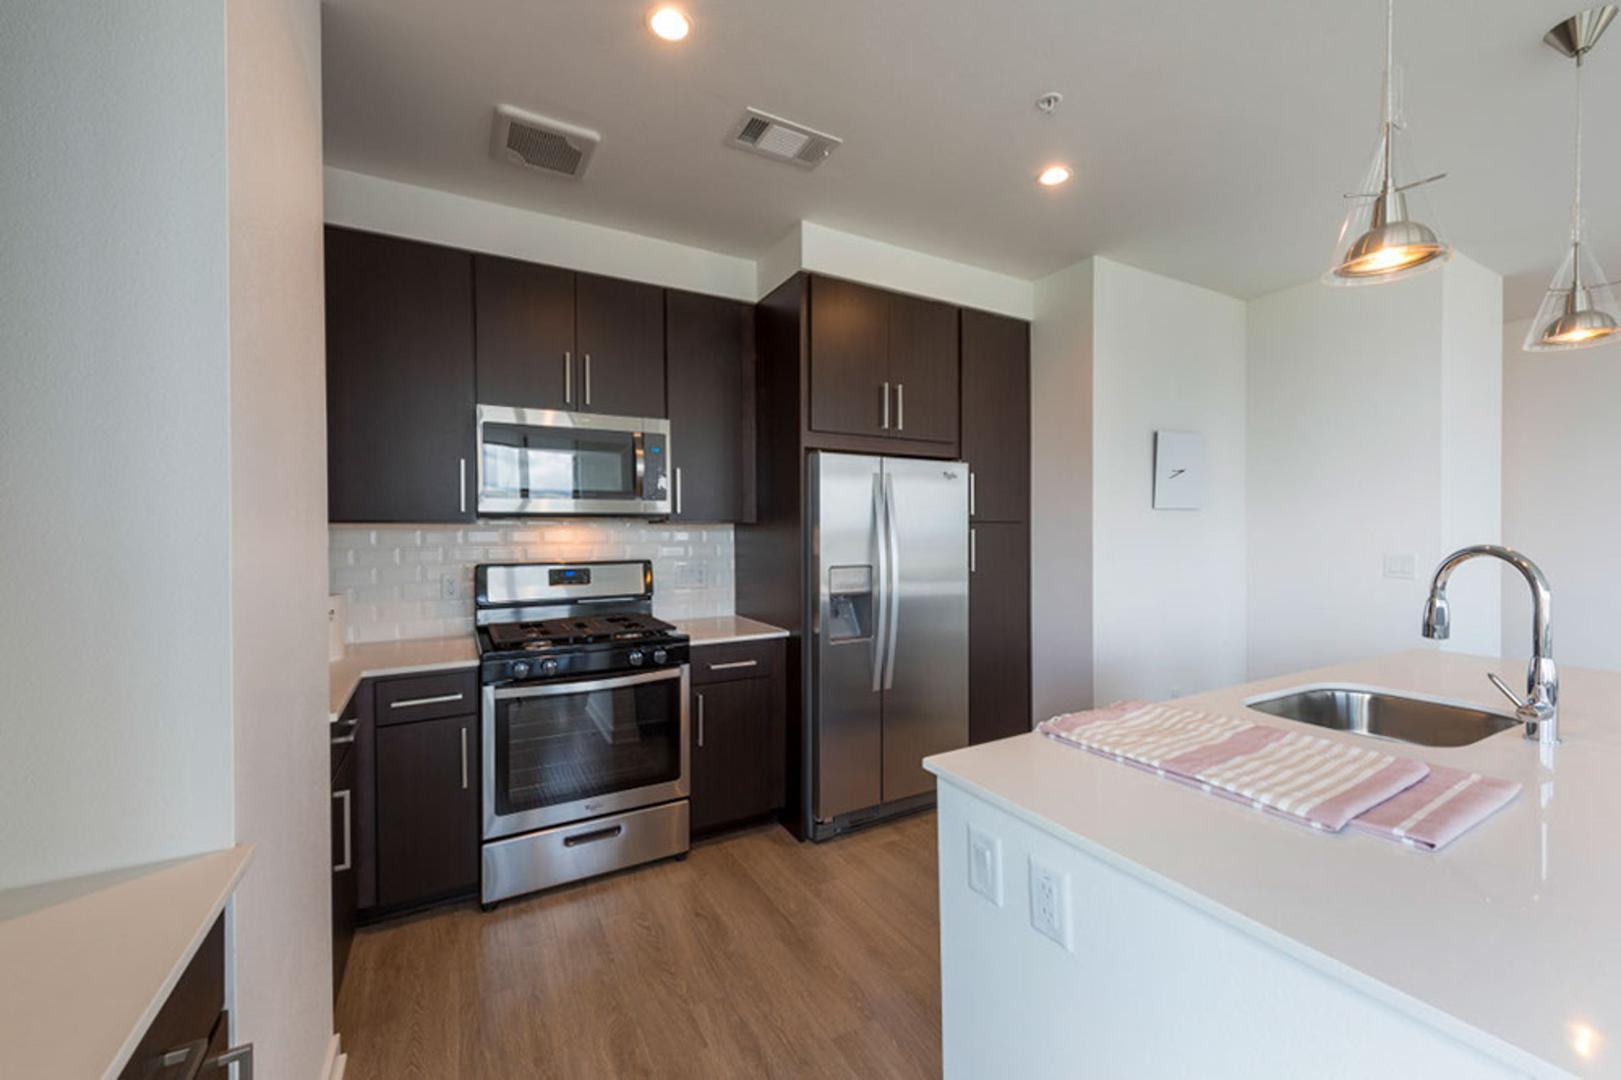 1911 Holcombe Blvd #2112, Houston, TX - $2,163 USD/ month